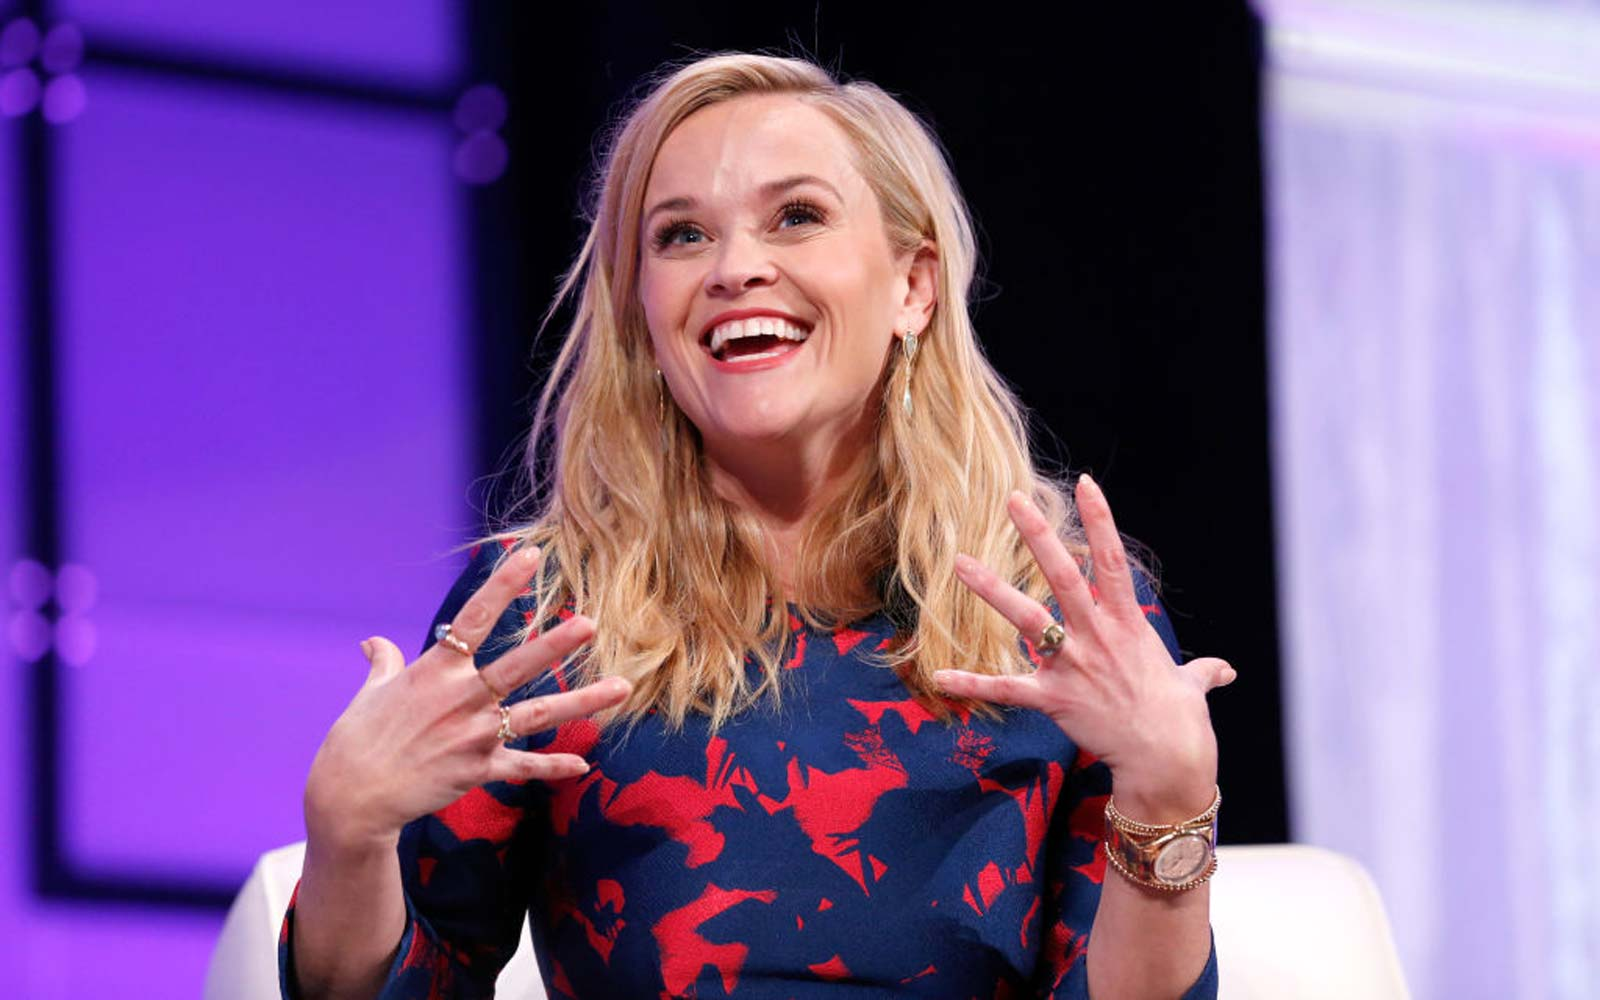 Actor/producer/activist Reese Witherspoon speaks onstage at the Watermark Conference for Women